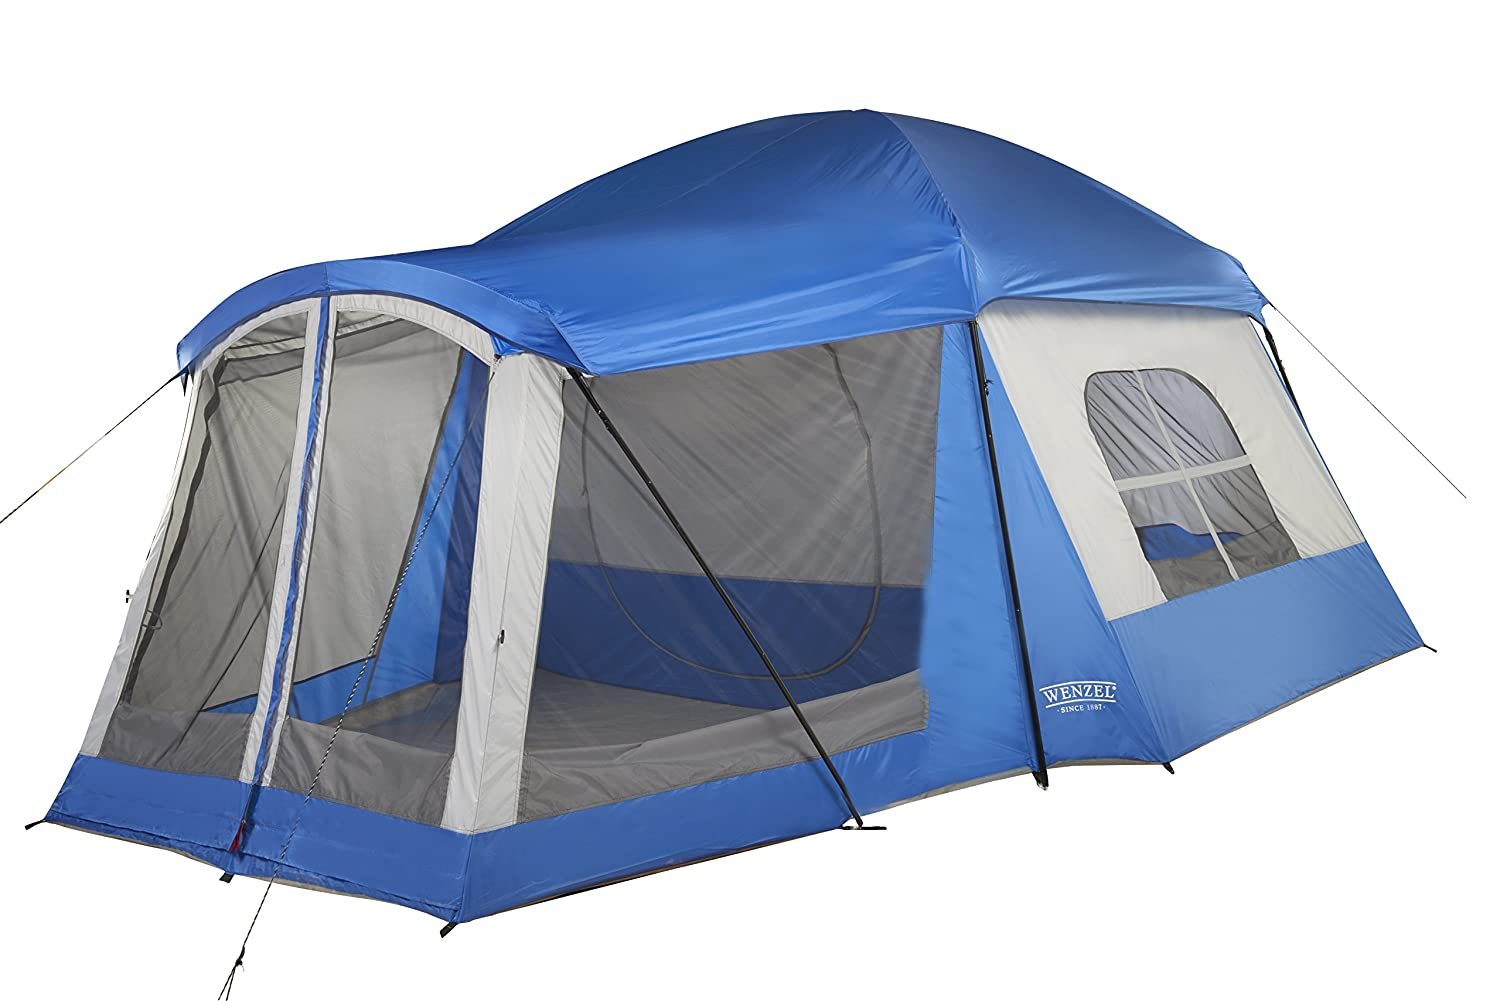 6. Best Family Tent With a Screened Room u2013 Wenzel 8 Person Klondike Tent  sc 1 st  Truth Survival & Top 10 Best Family Tent of 2018: The Ultimate Buying Guide